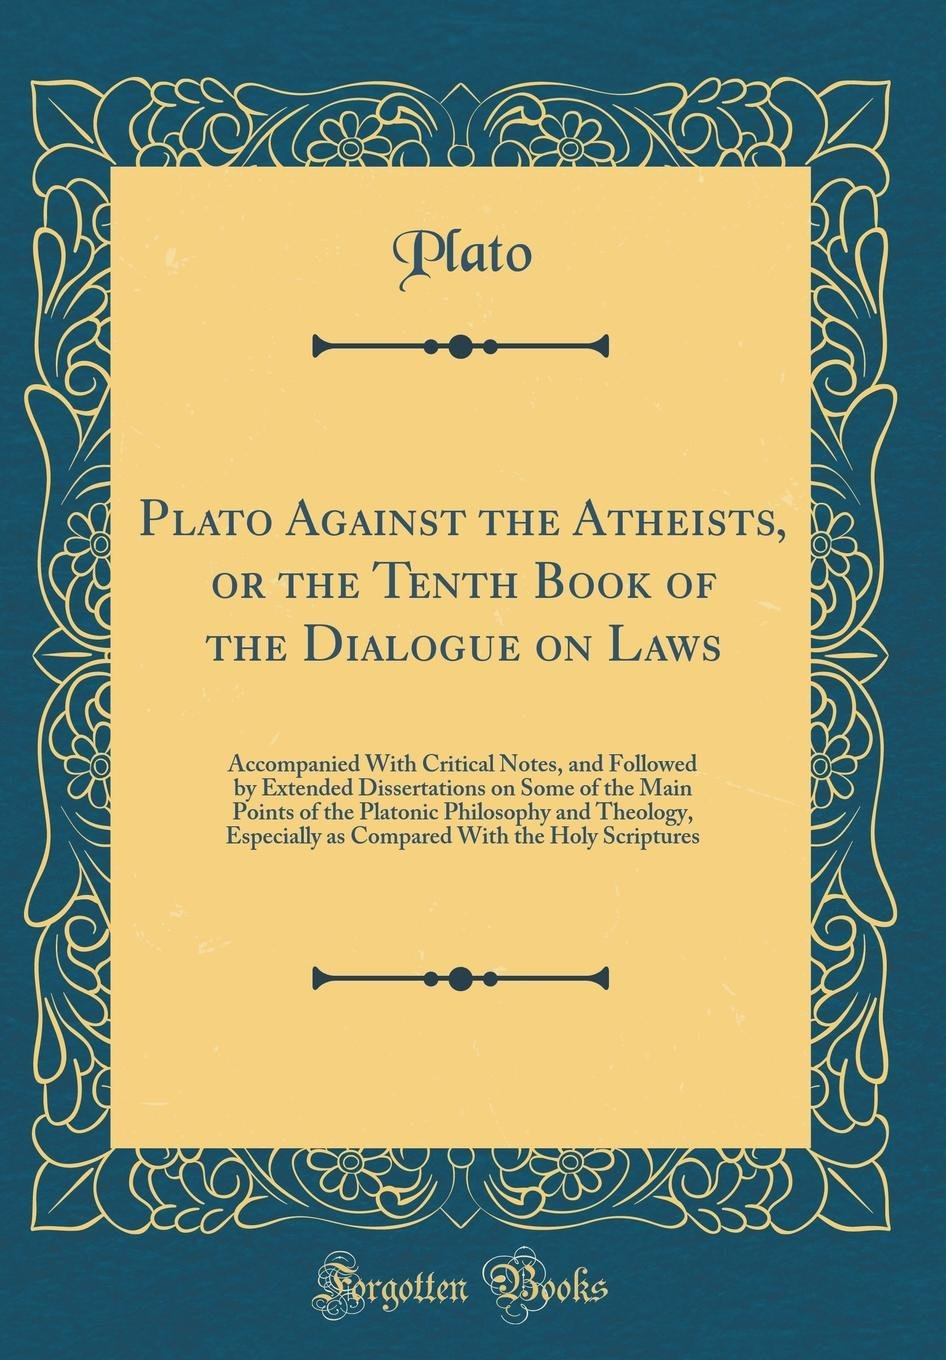 Read Online Plato Against the Atheists, or the Tenth Book of the Dialogue on Laws: Accompanied With Critical Notes, and Followed by Extended Dissertations on Some ... Especially as Compared With the Holy Scriptu pdf